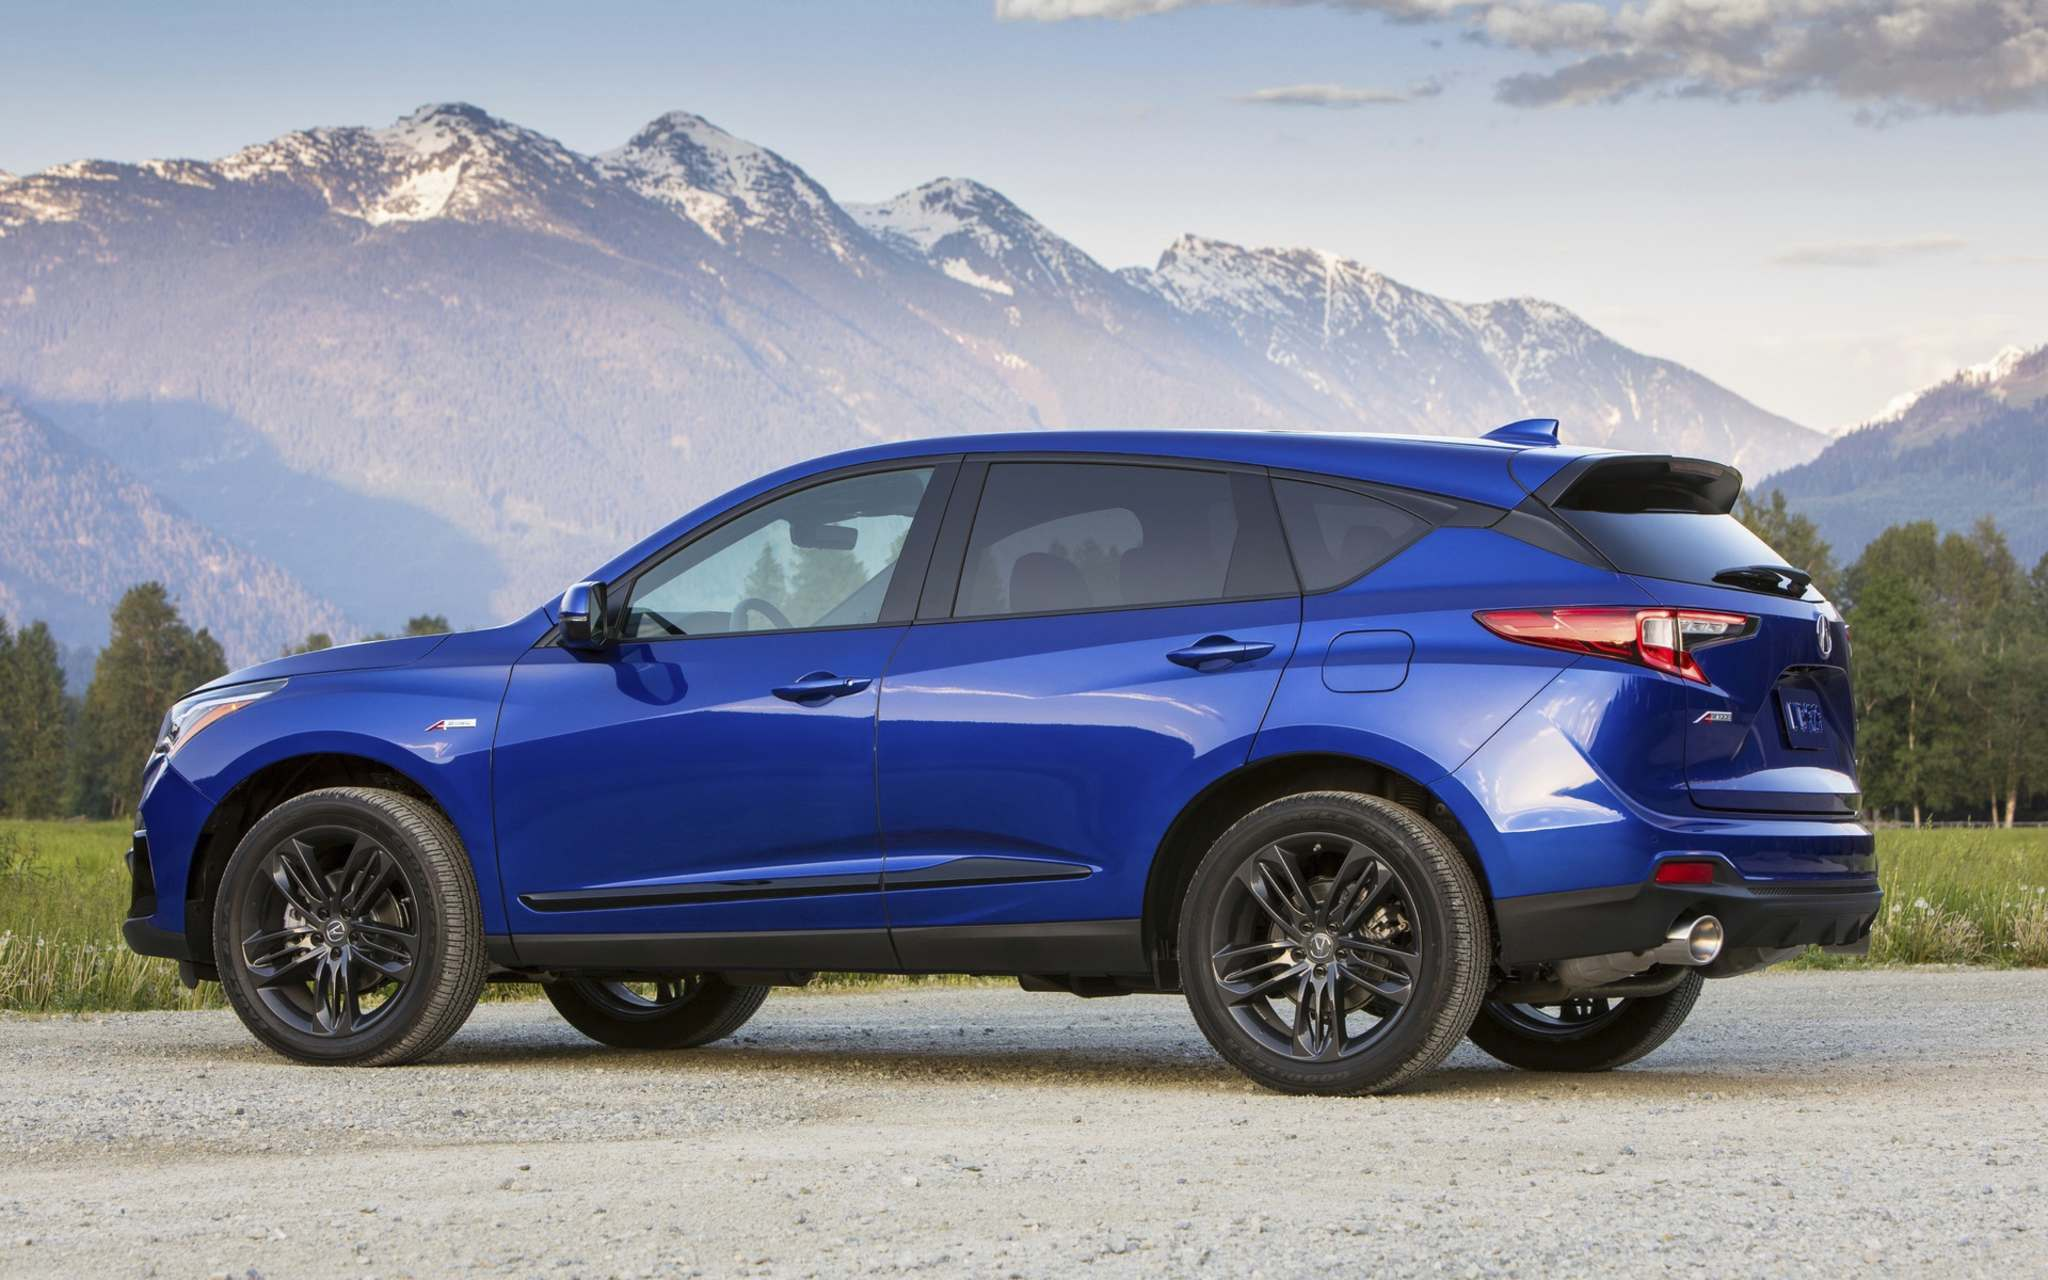 The new RDX manages to check off all of the important boxes for its class. (LC Media photos)